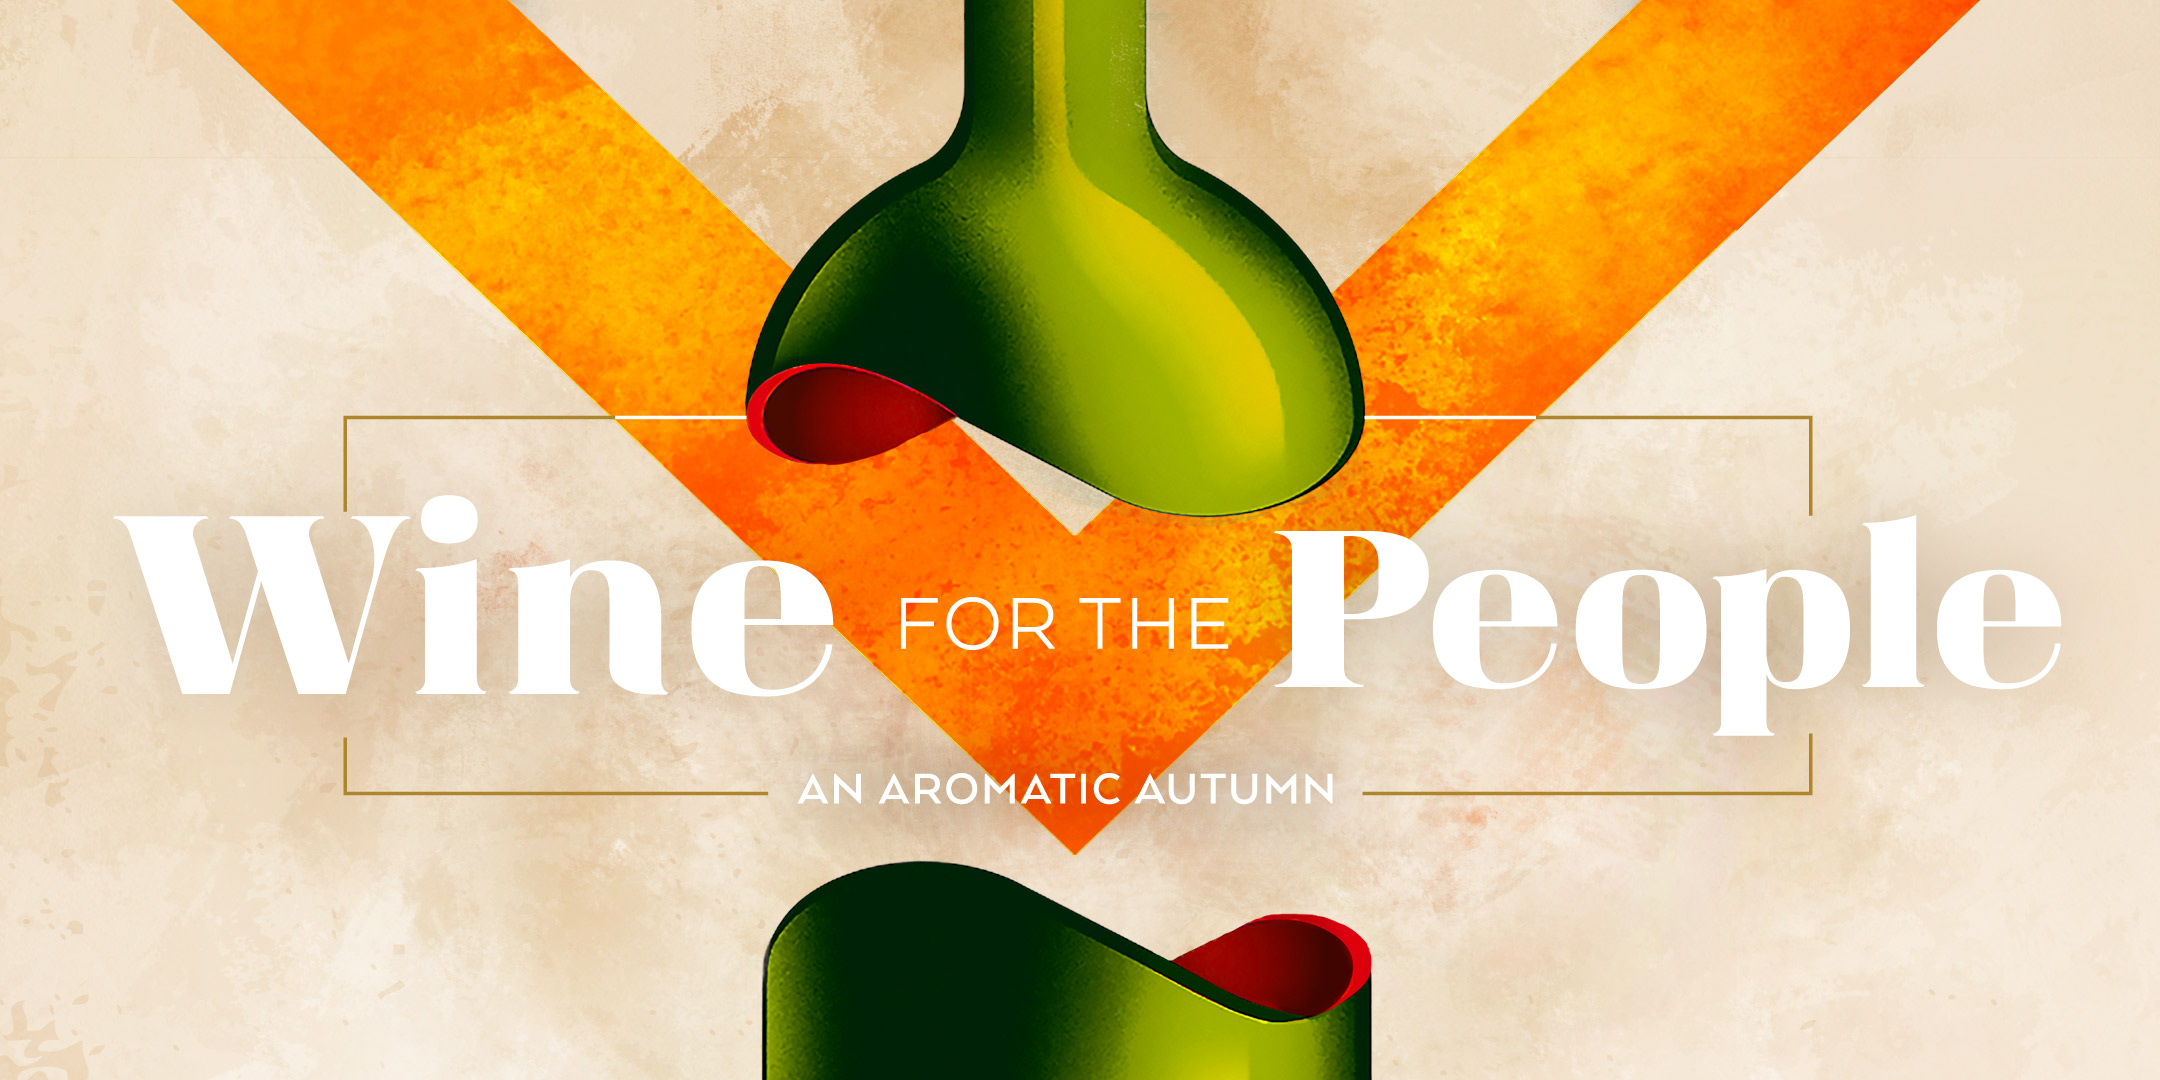 Wine for the People - An Aromatic Autumn